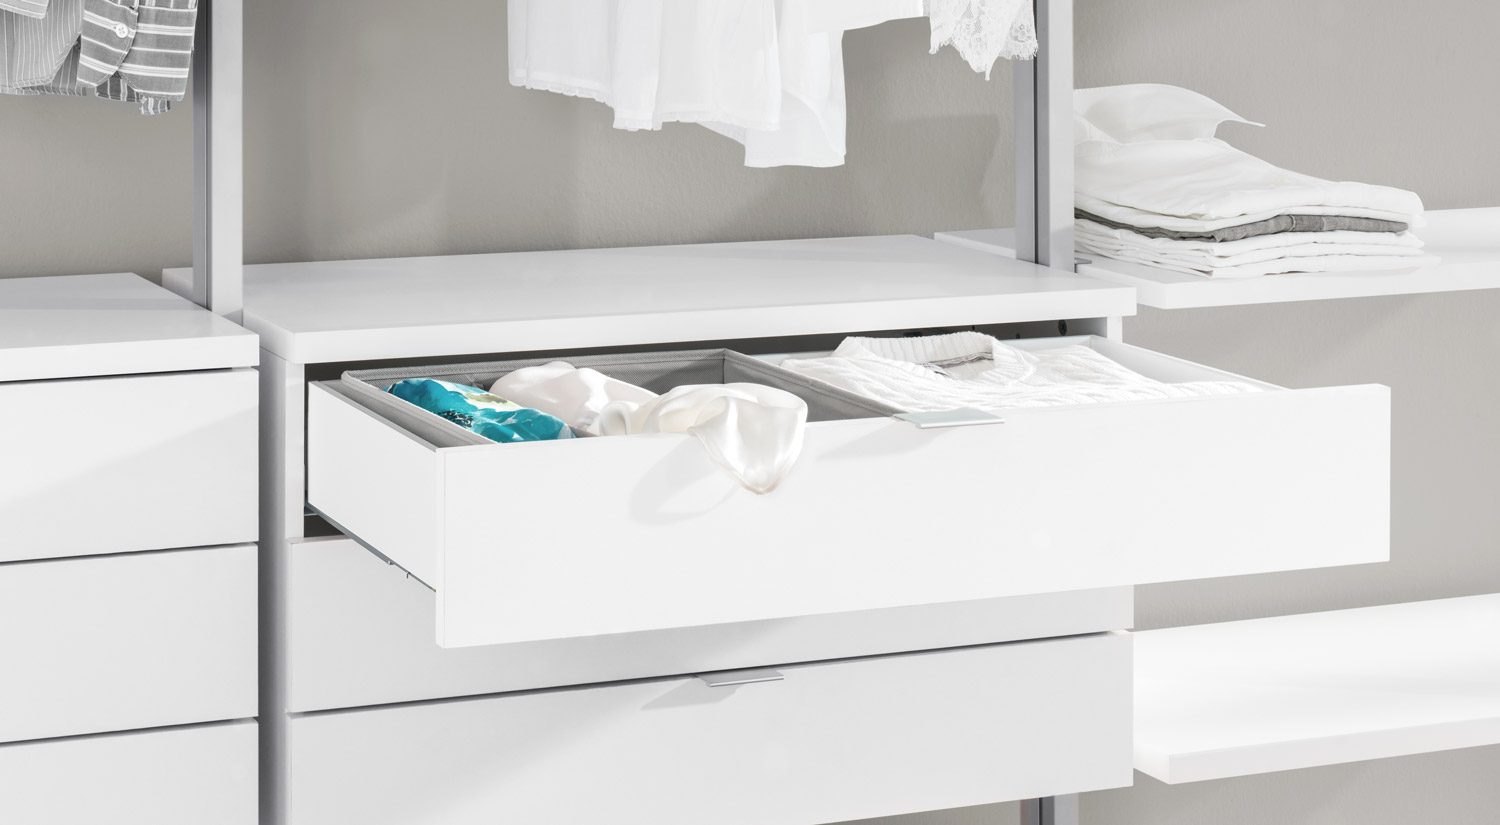 Shelves with Drawer - Drawer Units in the CLOS-IT dressing room